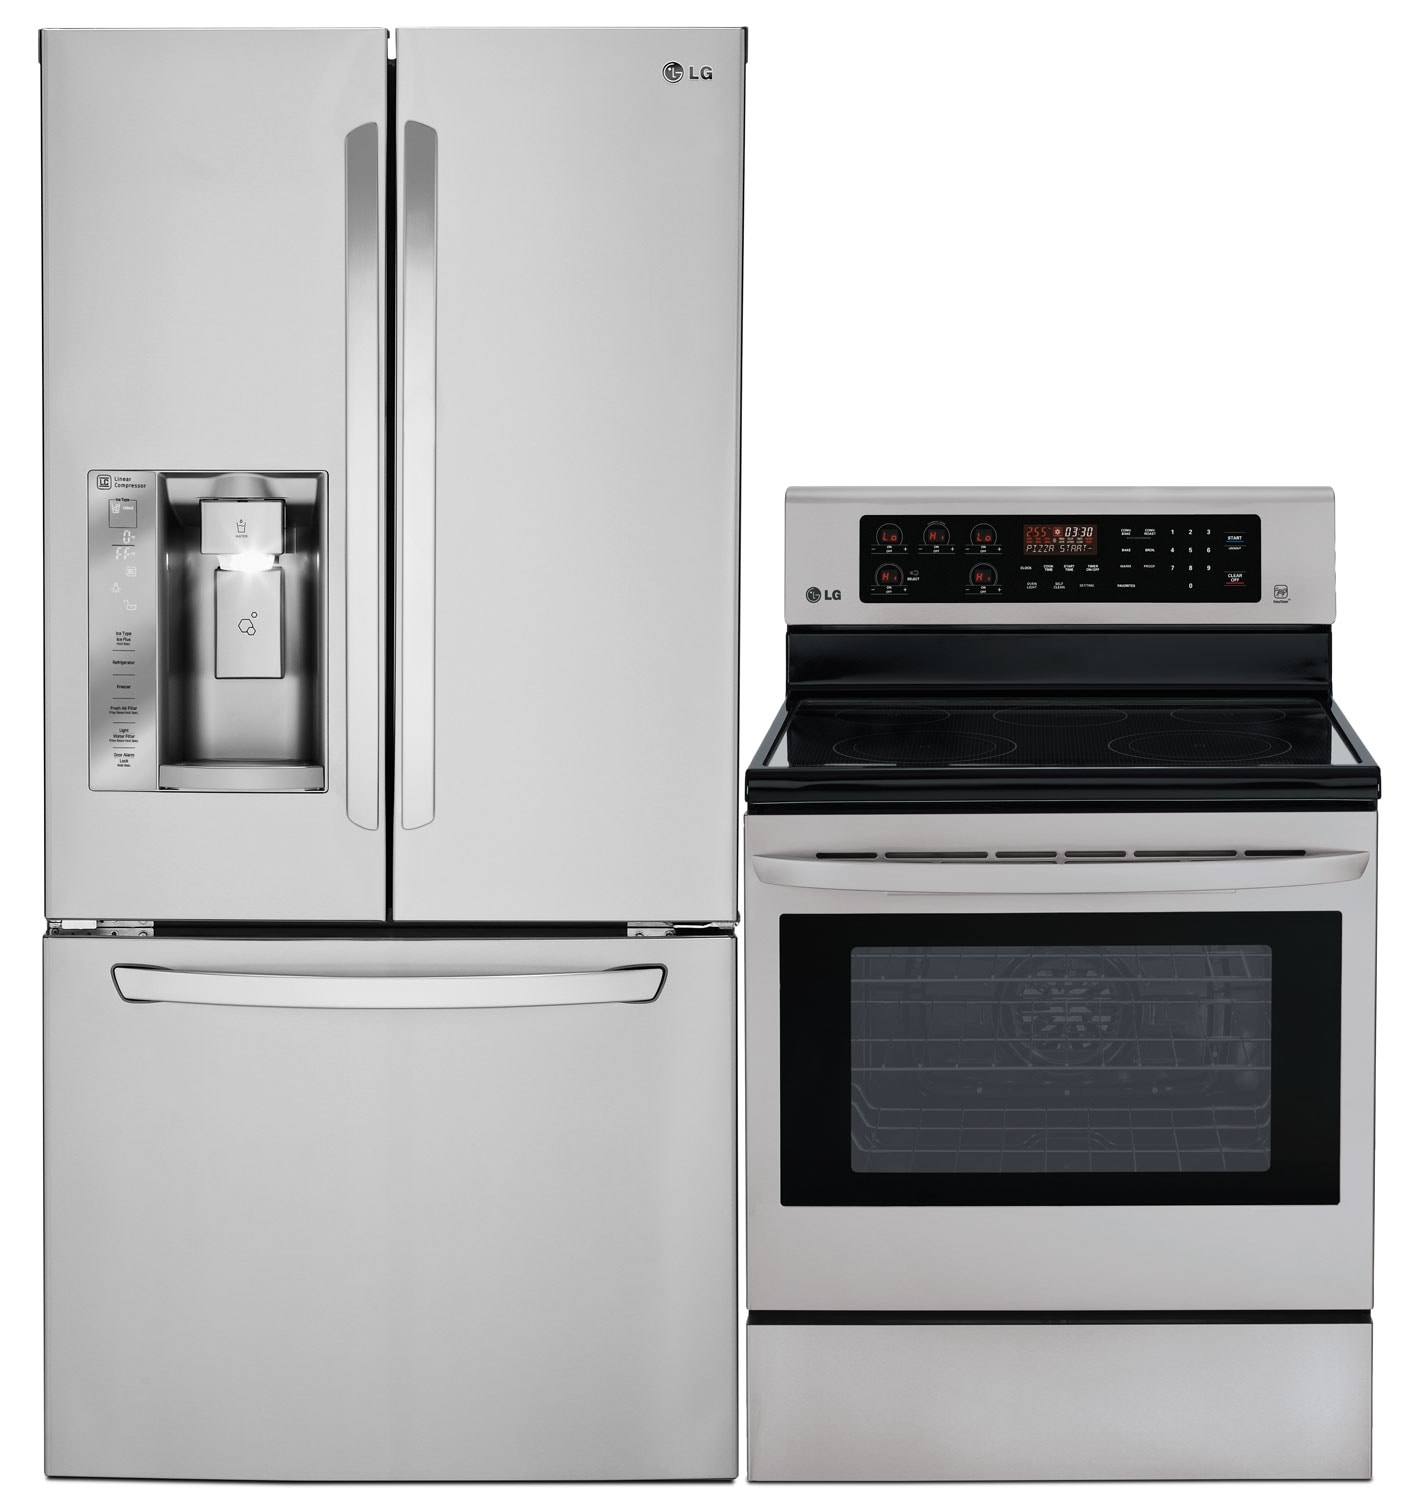 Cooking Products - LG 24.2 Cu. Ft. French Door Refrigerator and 6.3 Cu. Ft. Electric Range